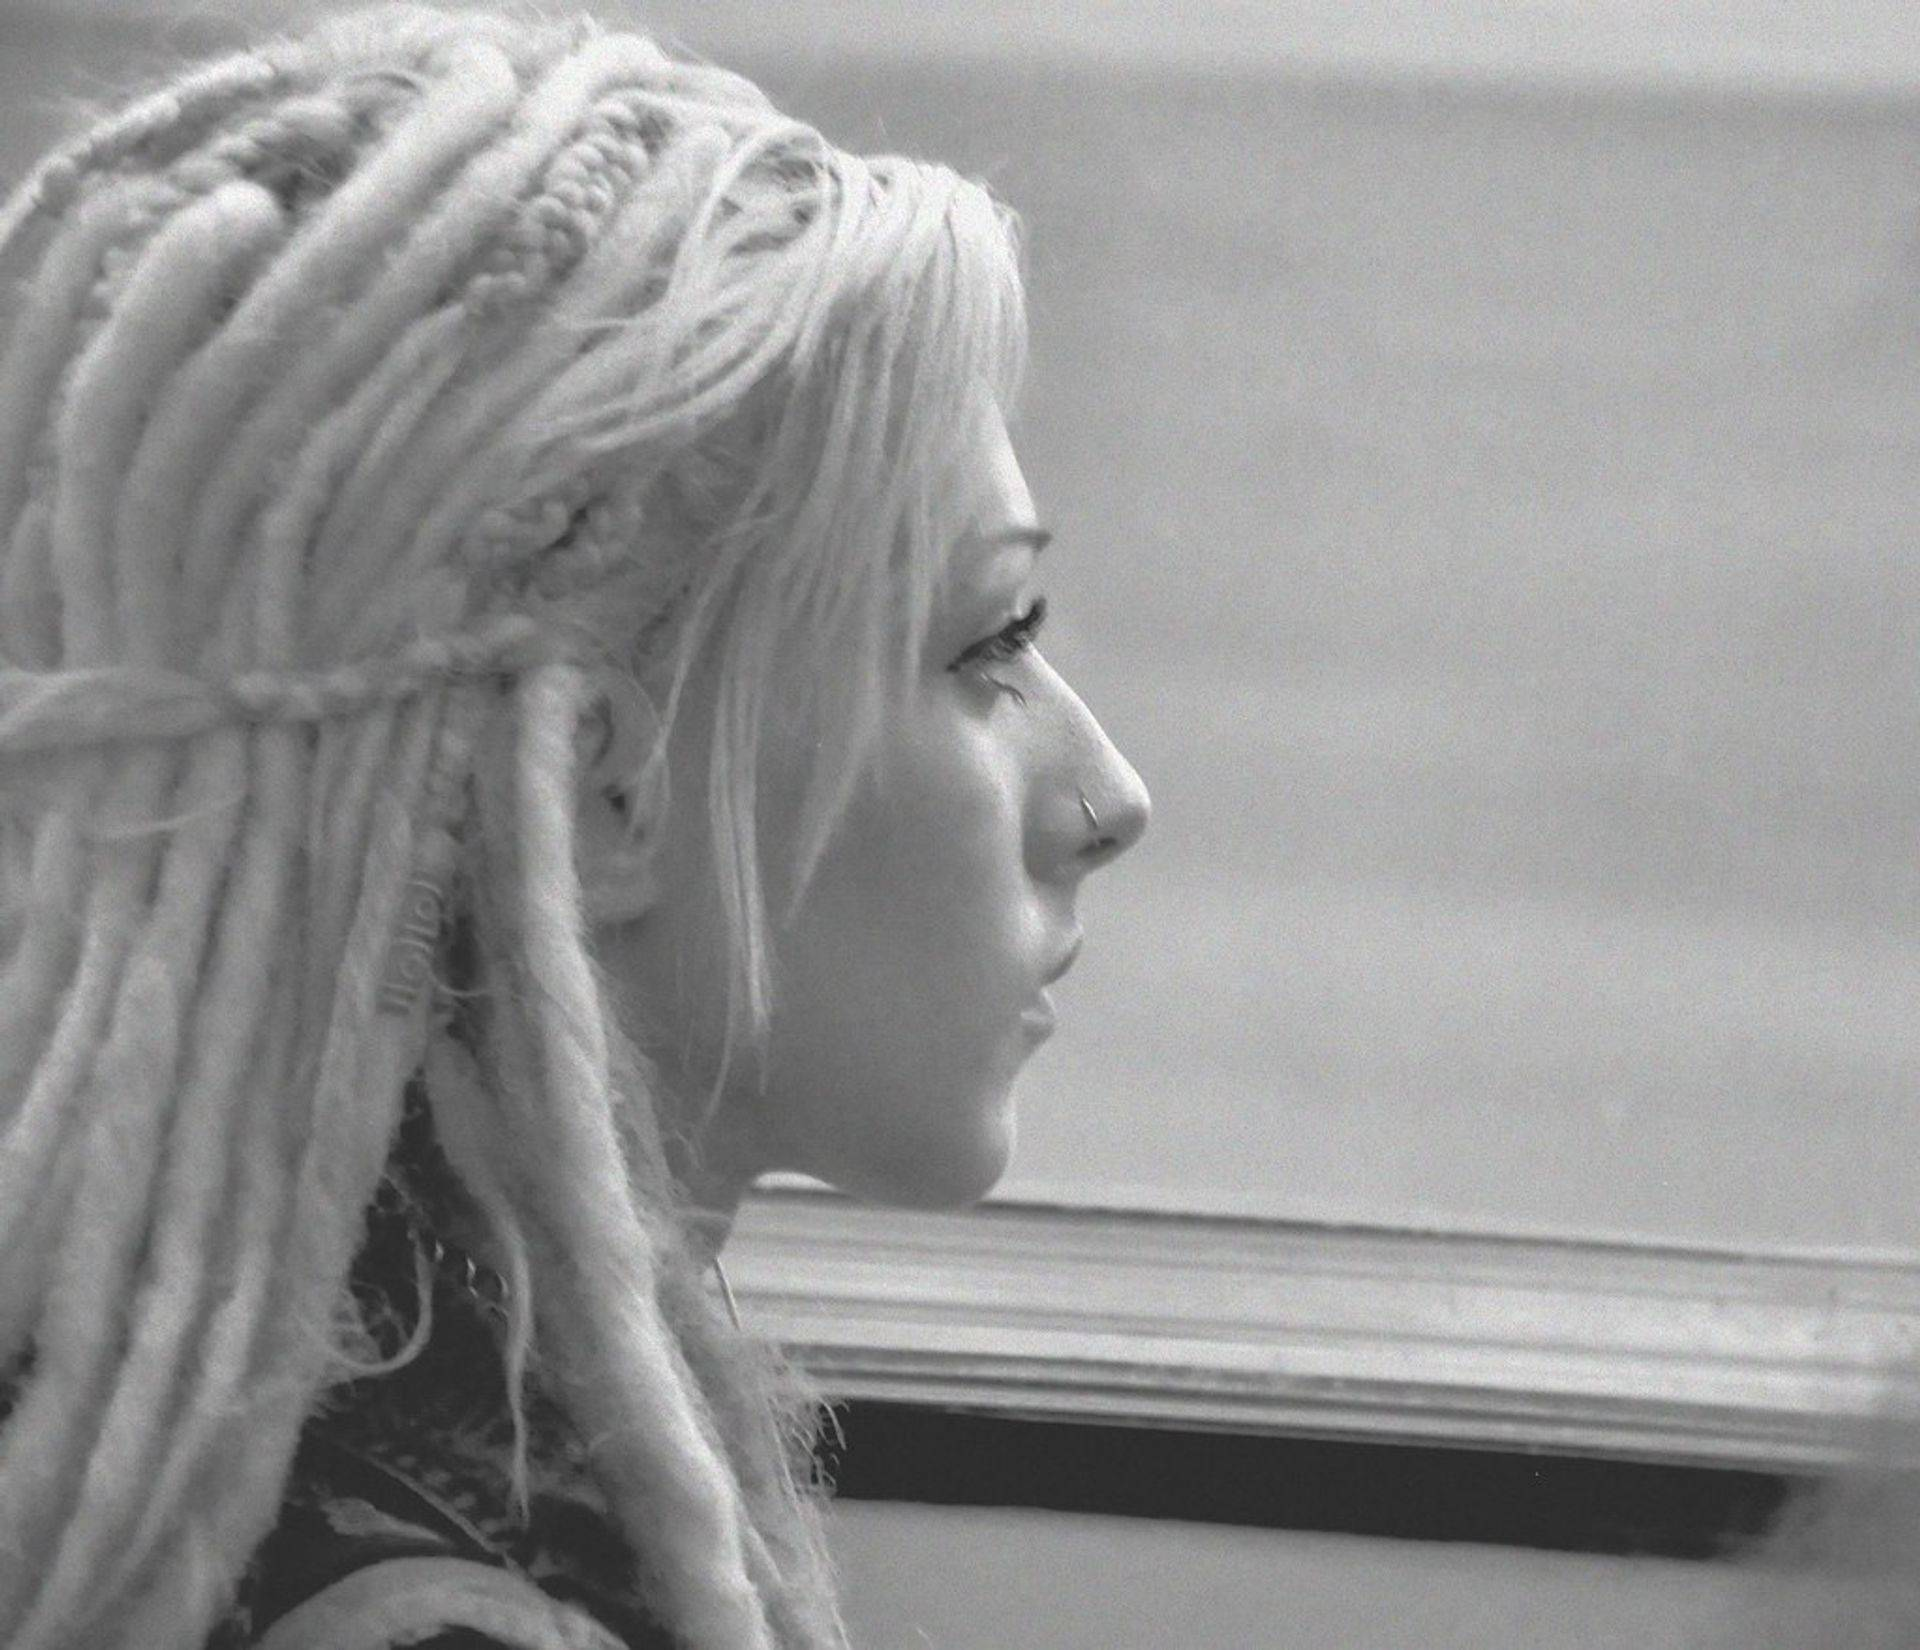 natural blonde sythetic dreads that are temporary